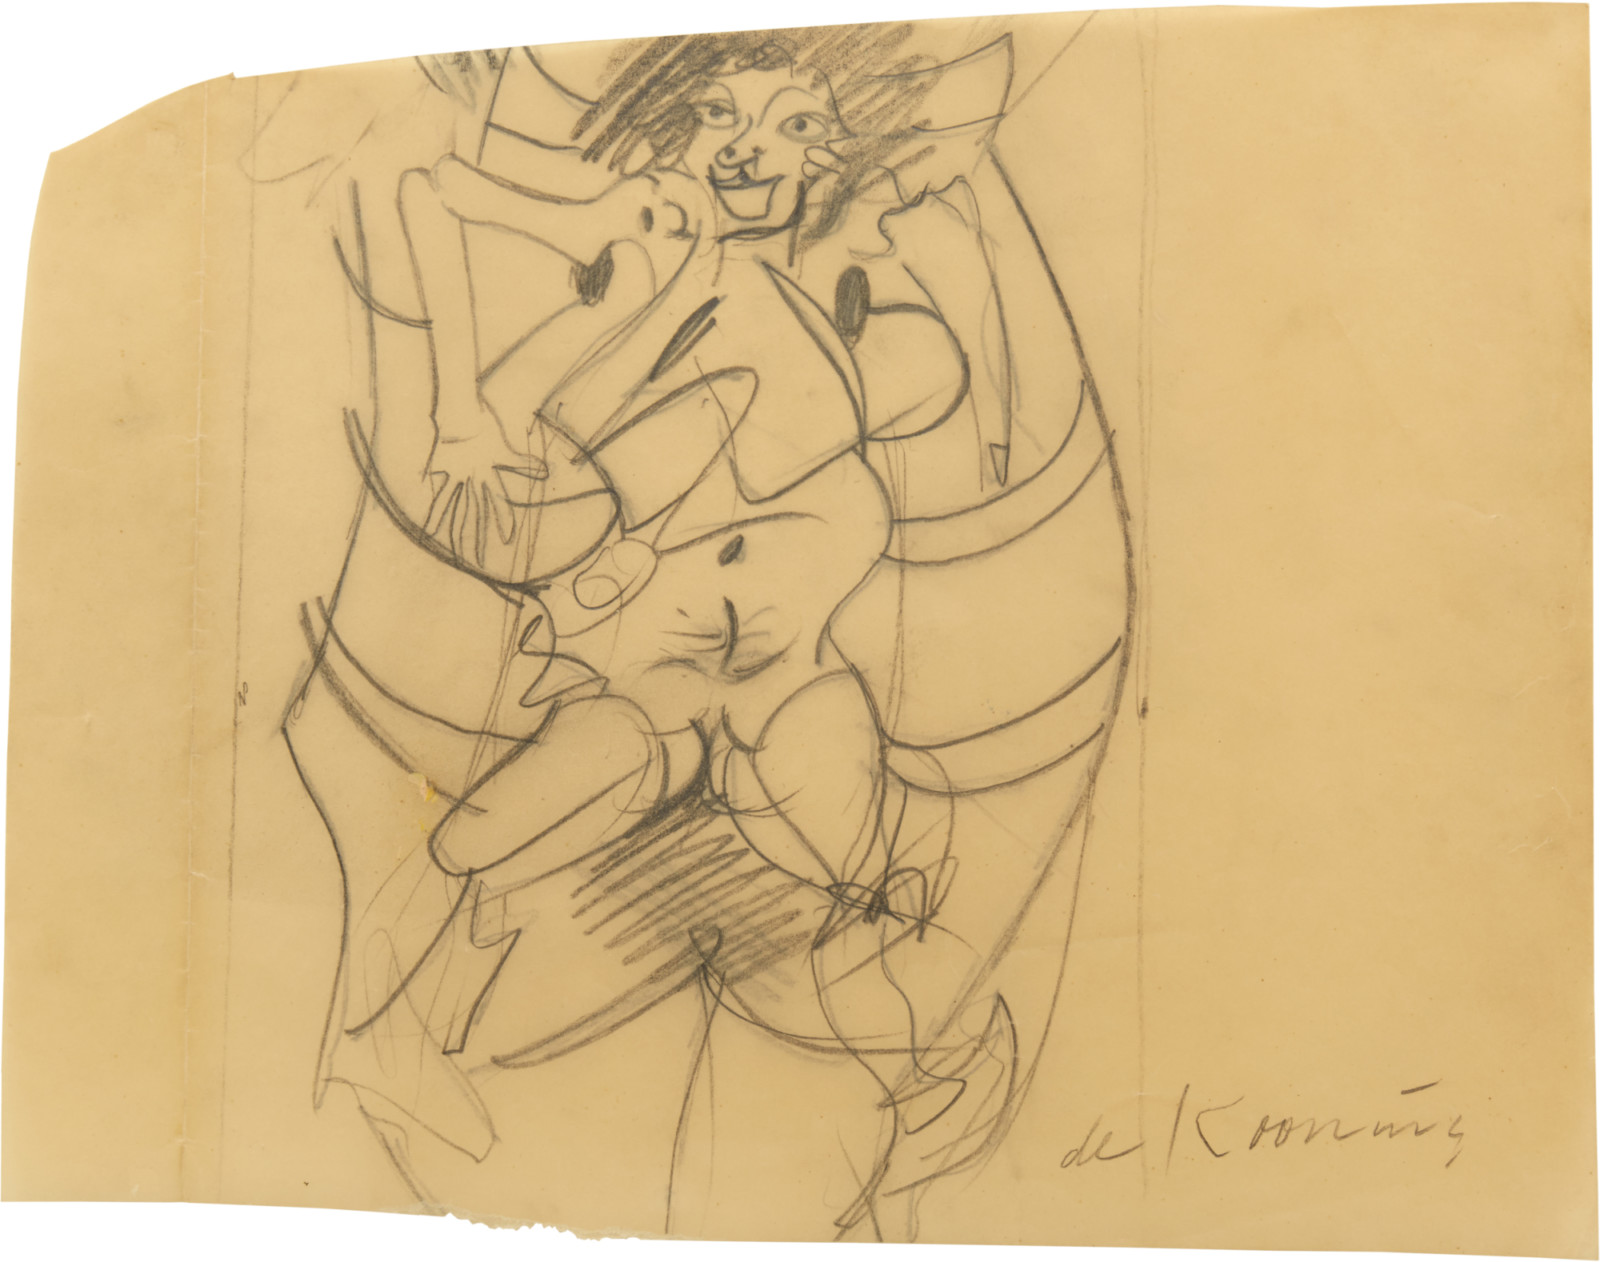 Drawing, dated c. 1964